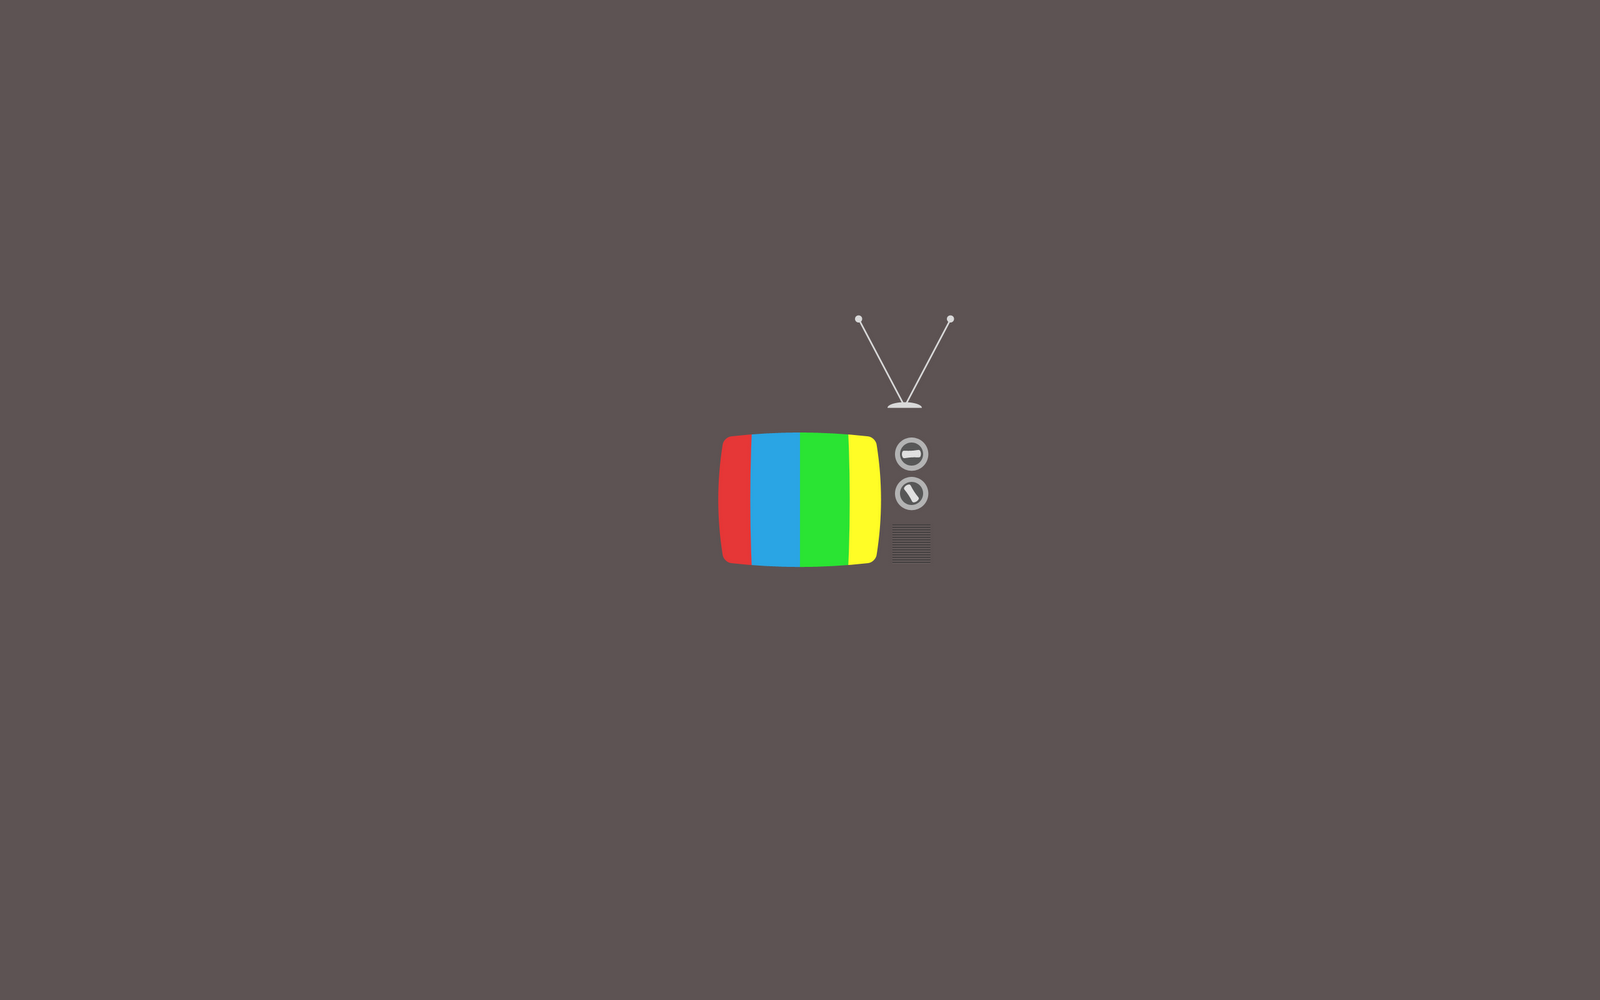 Pictures: Cool Minimalist Wallpapers HD | Amazing, Funny ...